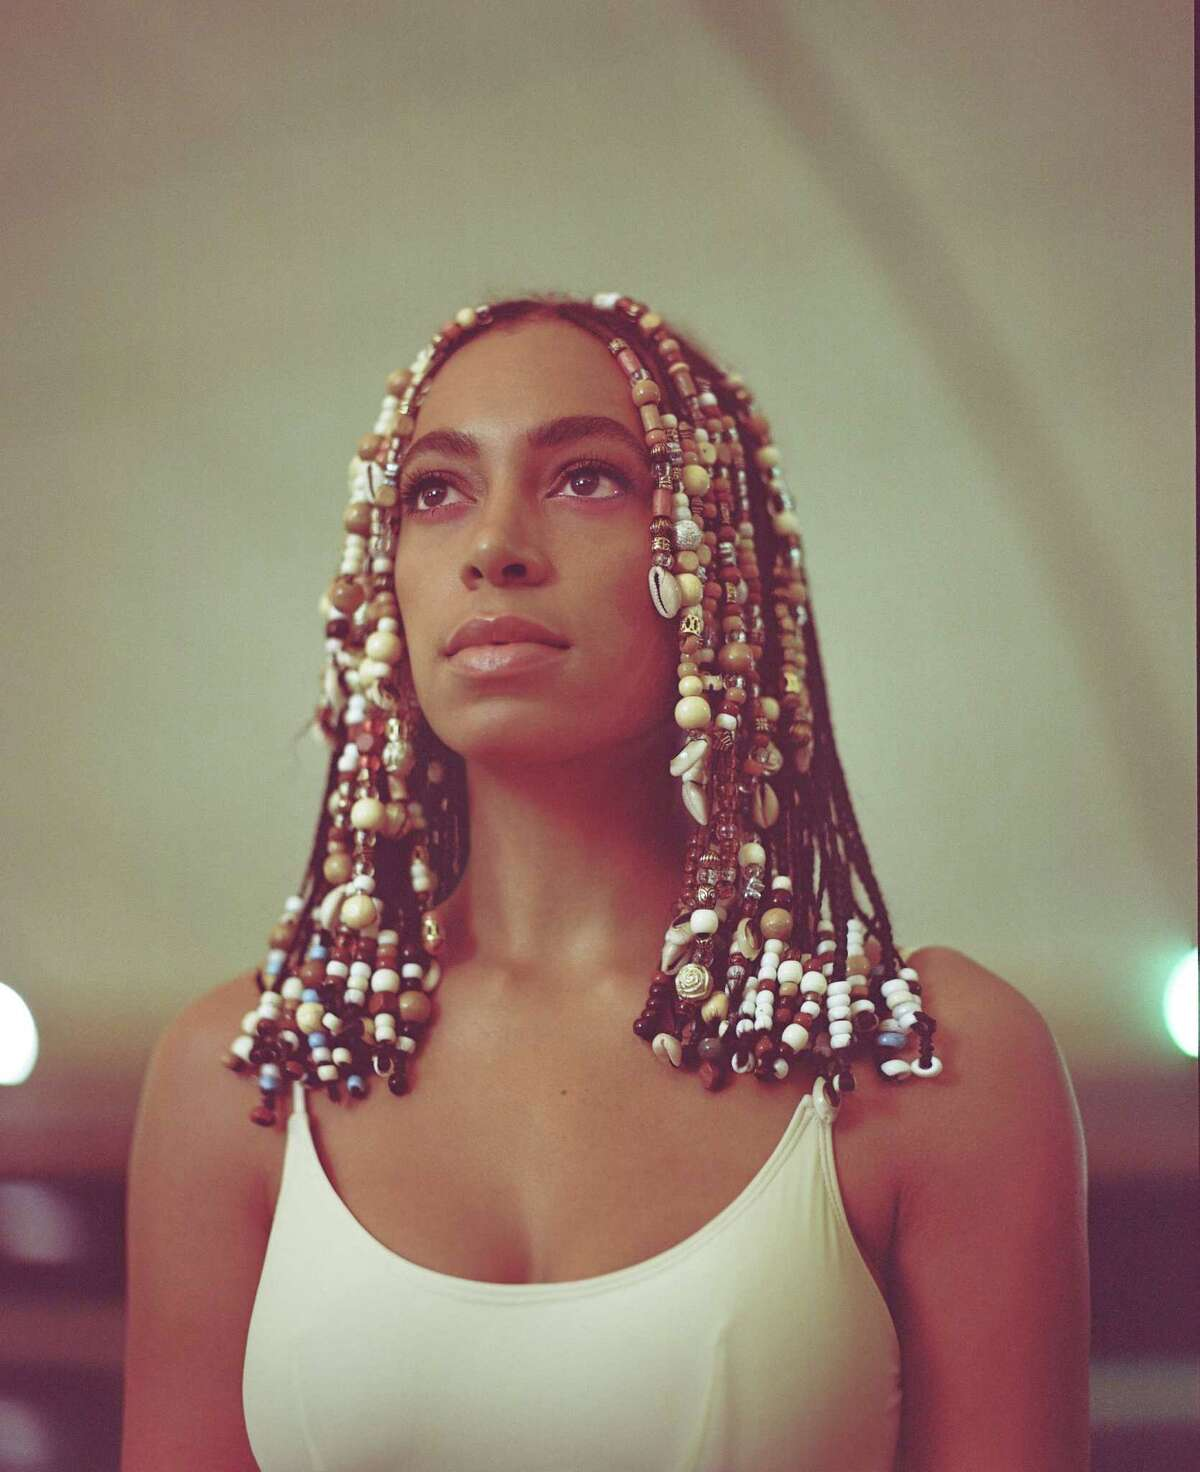 SolangeKnowles released a 112-page digital book with her album A Seat At the Table.